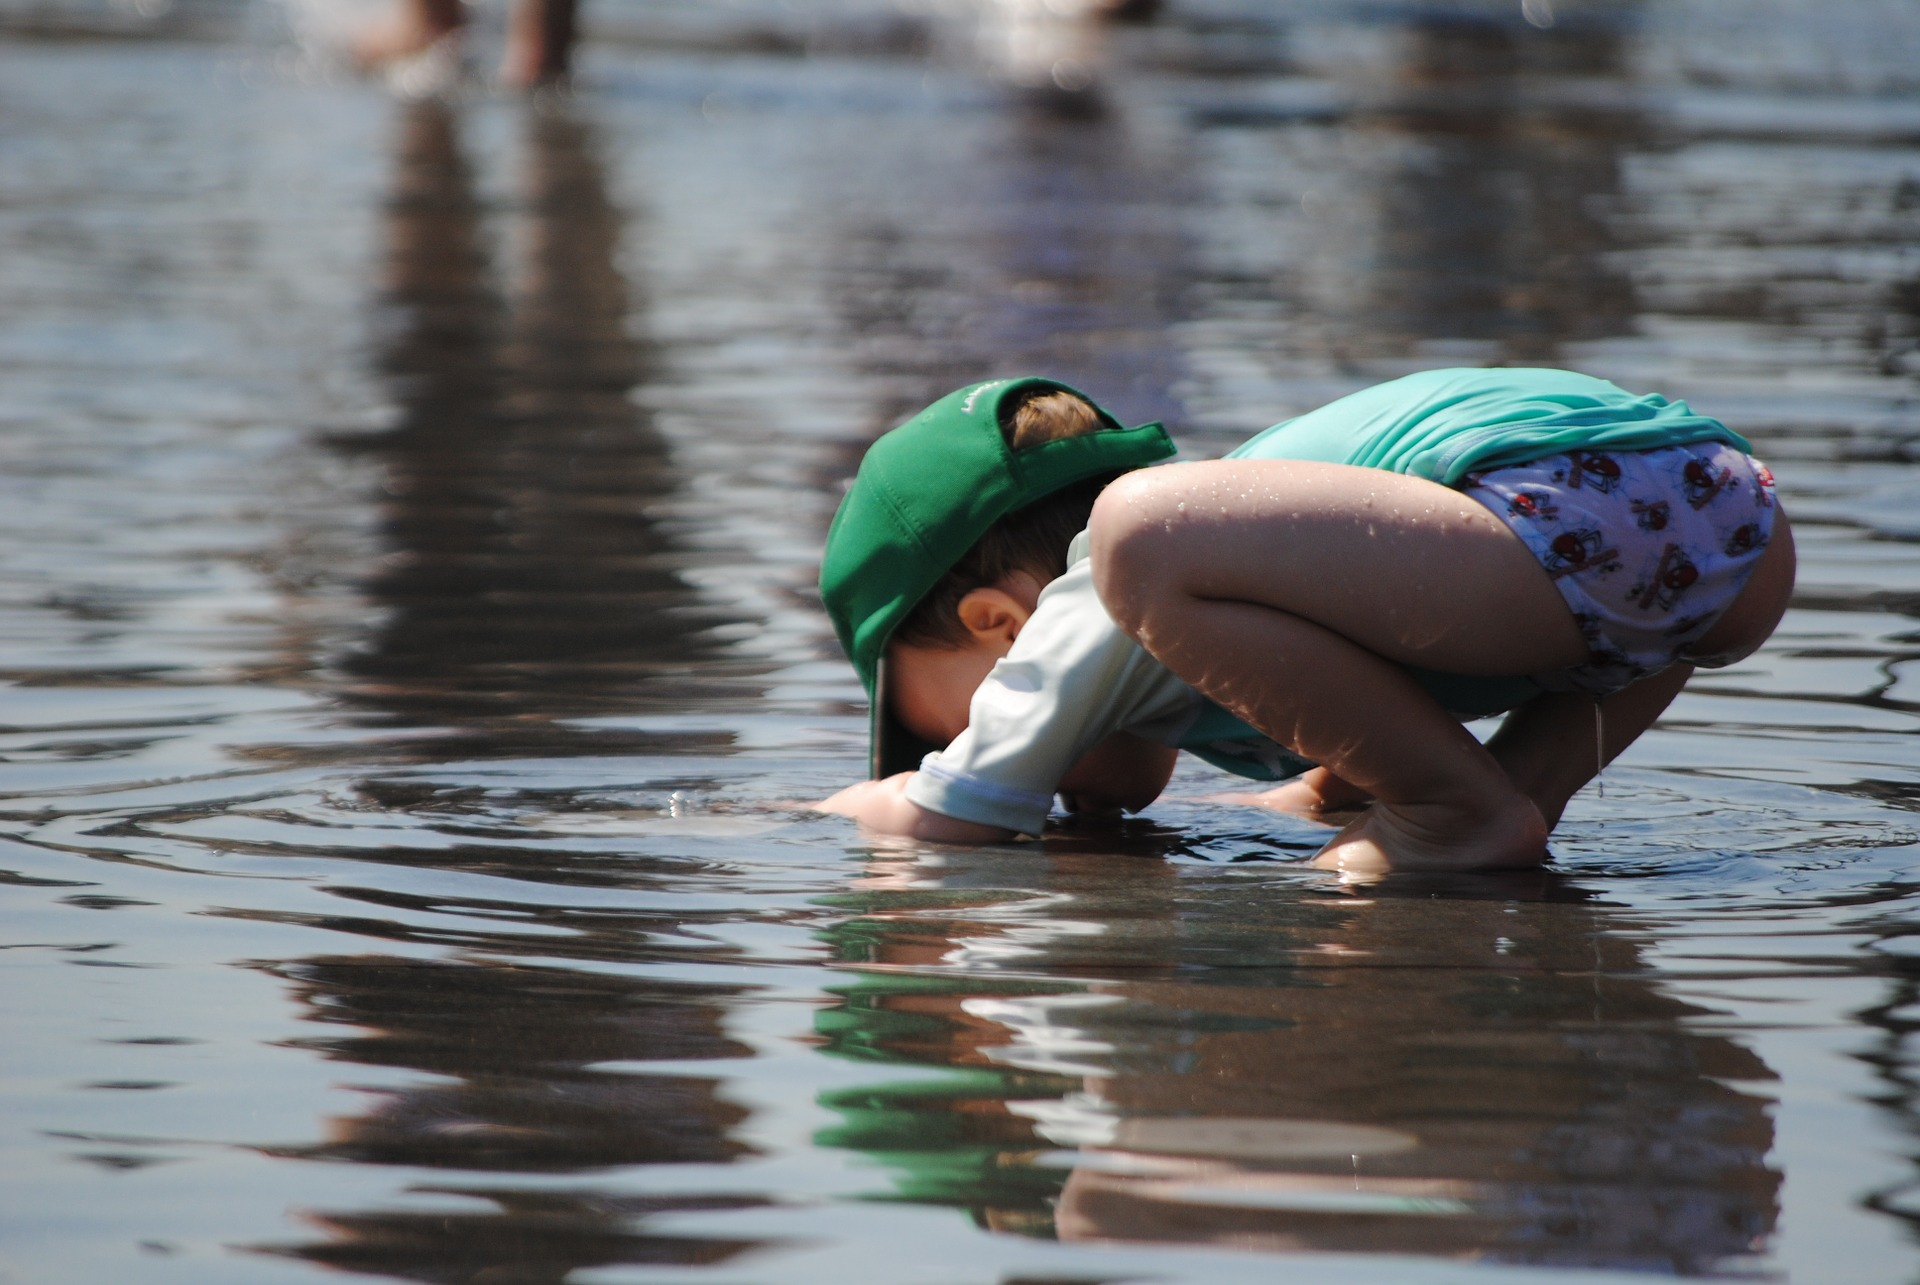 child-playing-in-water-885298_1920